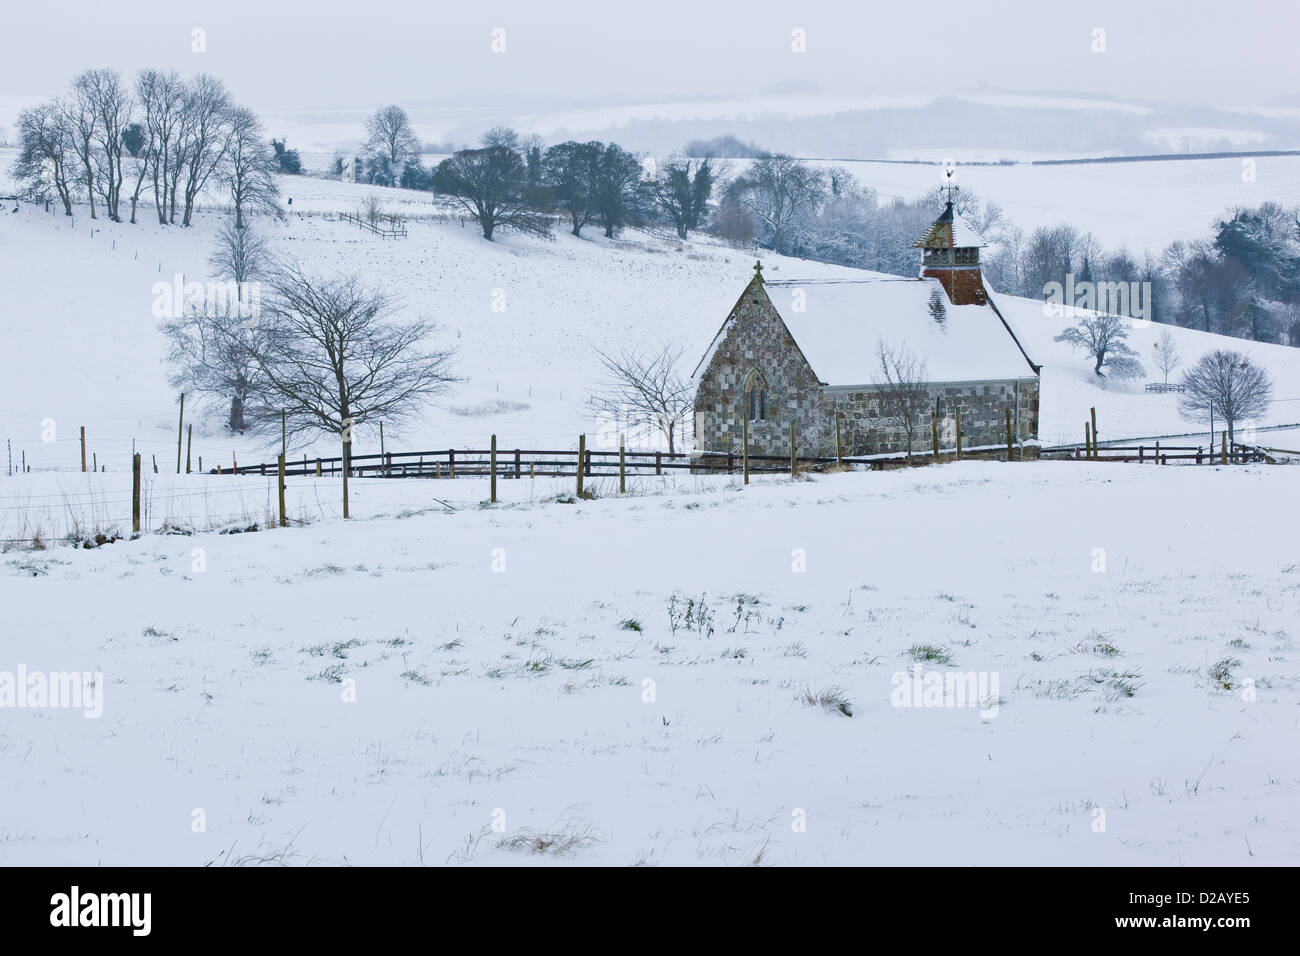 Friday January 18th 2013, the small Chapel at Fifield Bavant in Wiltshire surrounded by snow covered fields. Fifield - Stock Image